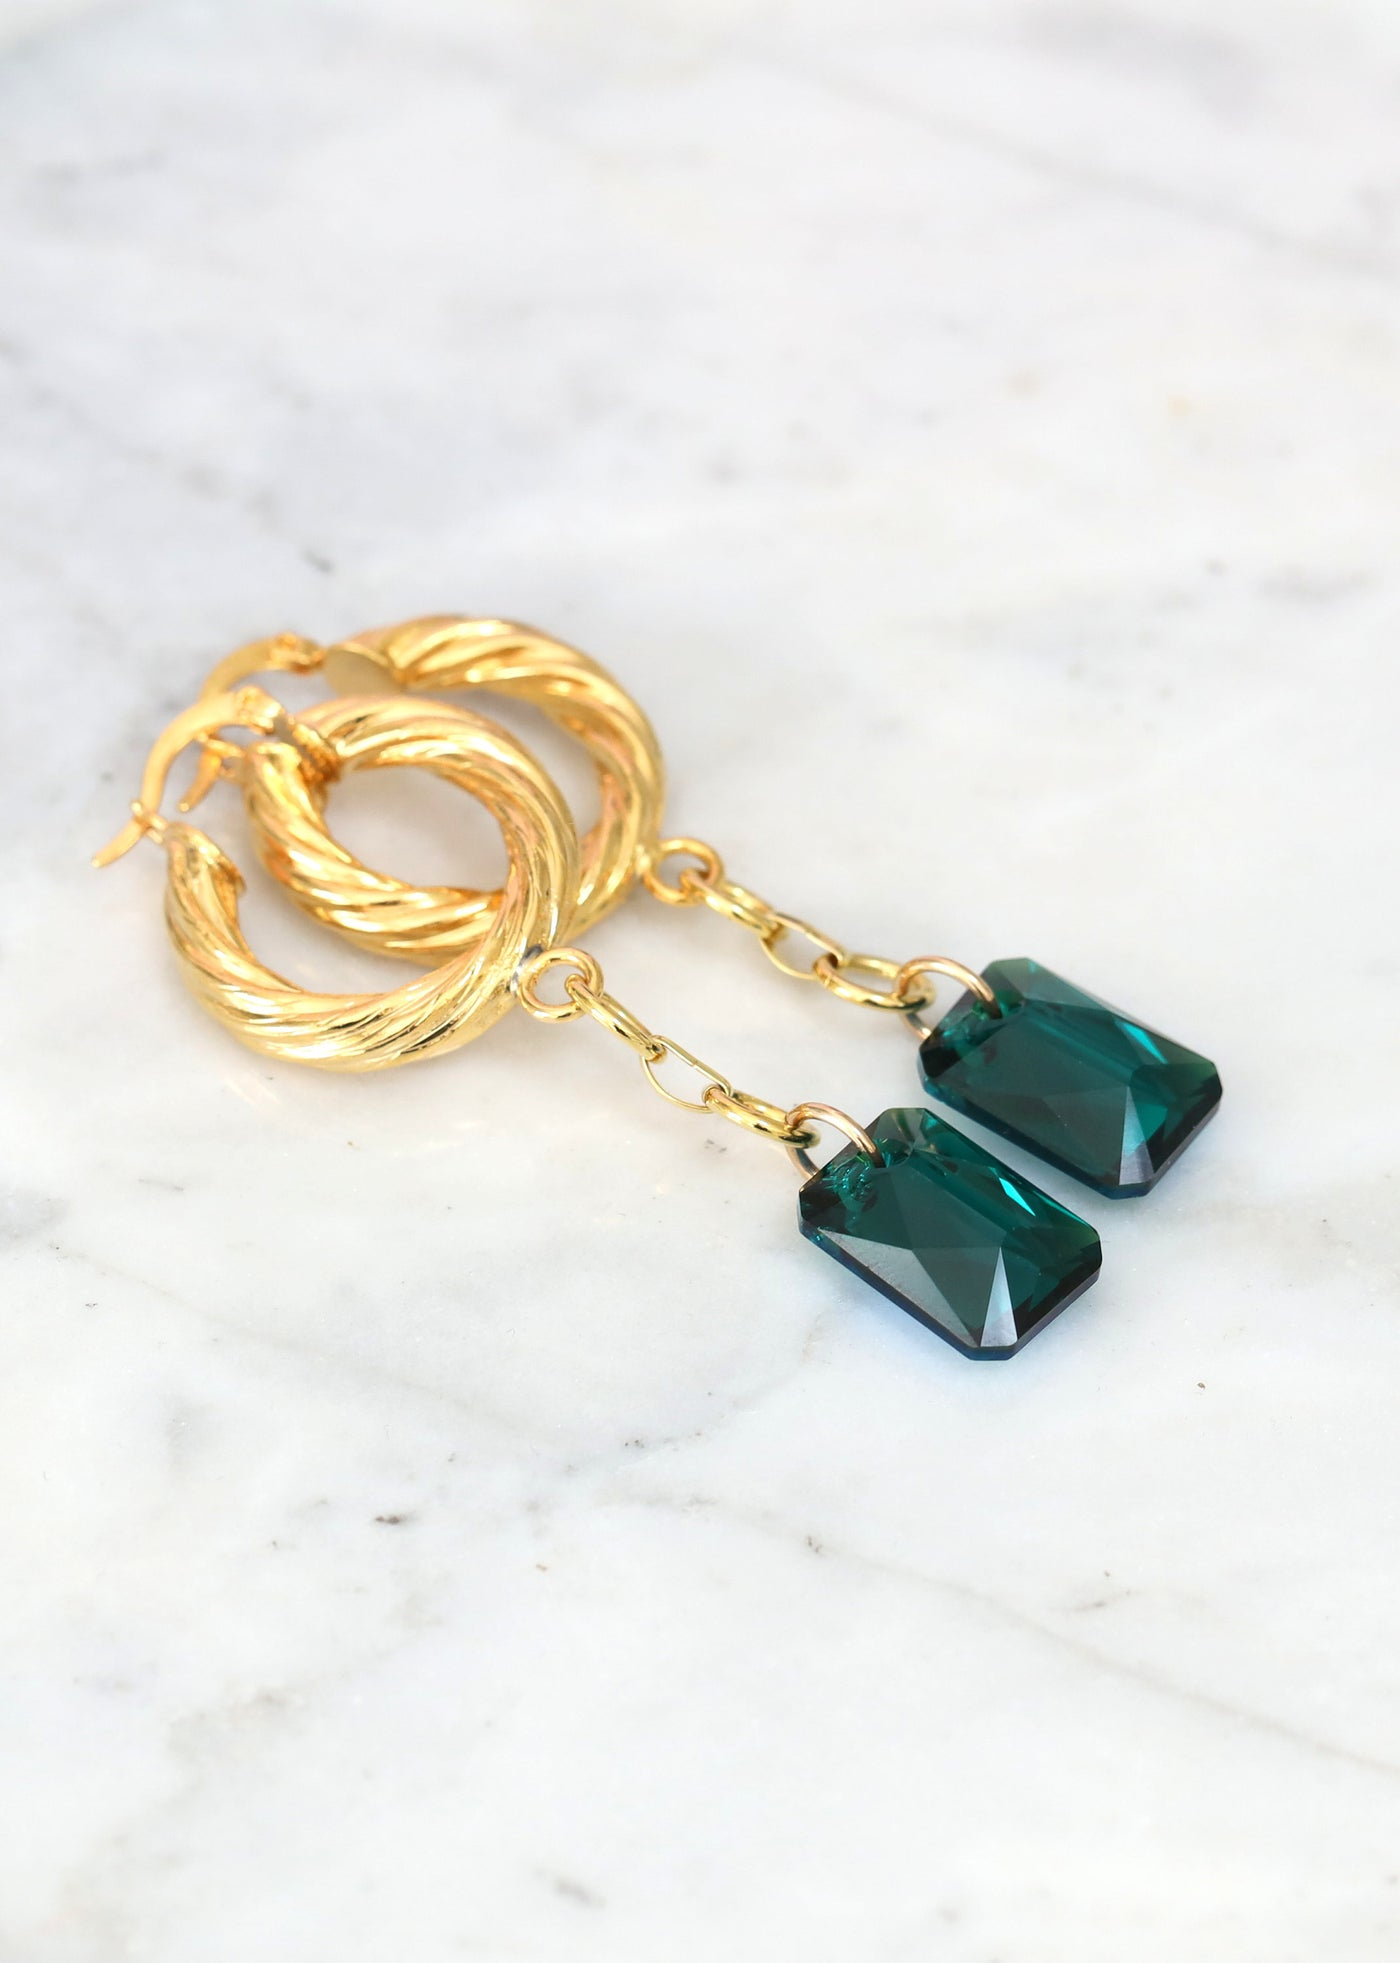 Emerald Earrings, Emerald Drop Earrings, Gold Hoop Earrings, Green Crystal Earrings, Oversize Hoop Earrings, Boho Earrings, Hoop Earrings